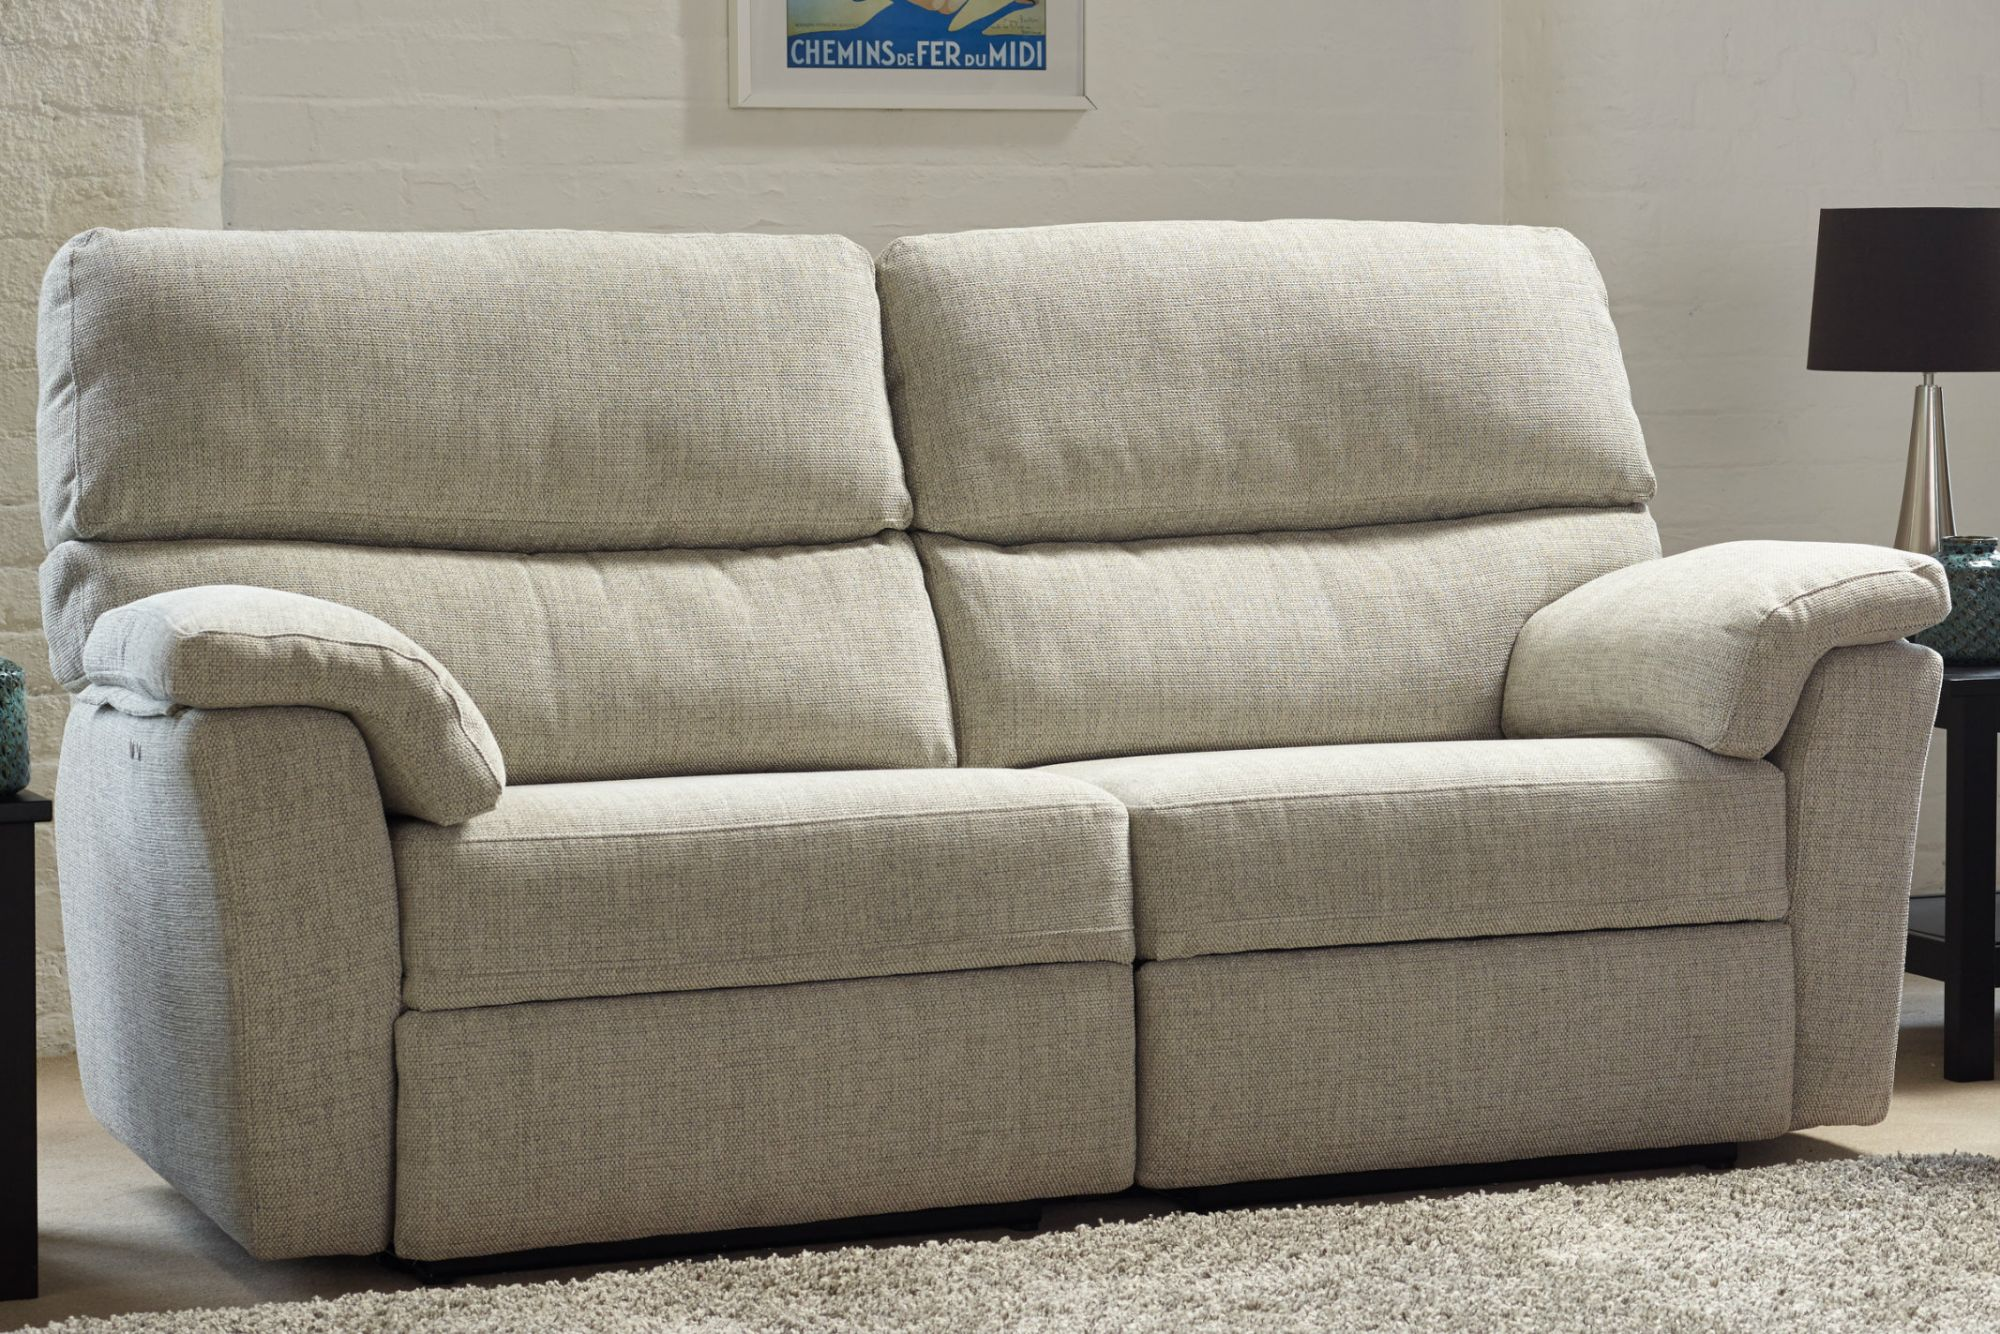 Incredible Naples 3 Seater Power Recliner Sofa Pabps2019 Chair Design Images Pabps2019Com